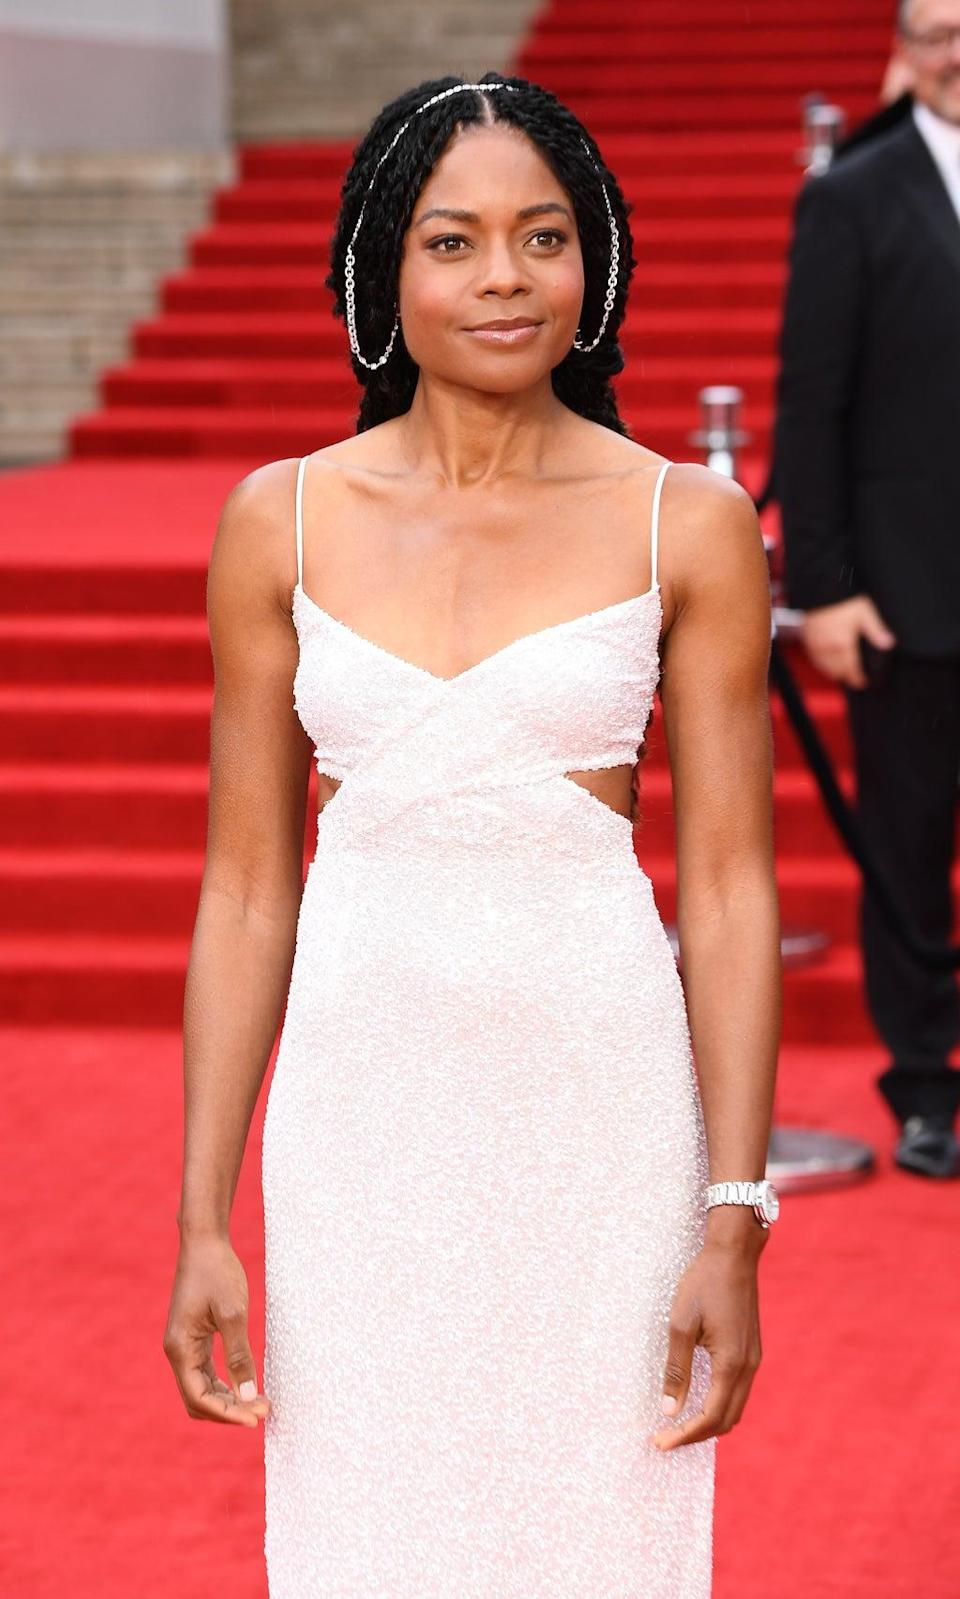 Naomie Harris (Jeff Spicer/Getty Images for EON Productions, Metro-Goldwyn-Mayer Studios, and Universal Pictures)